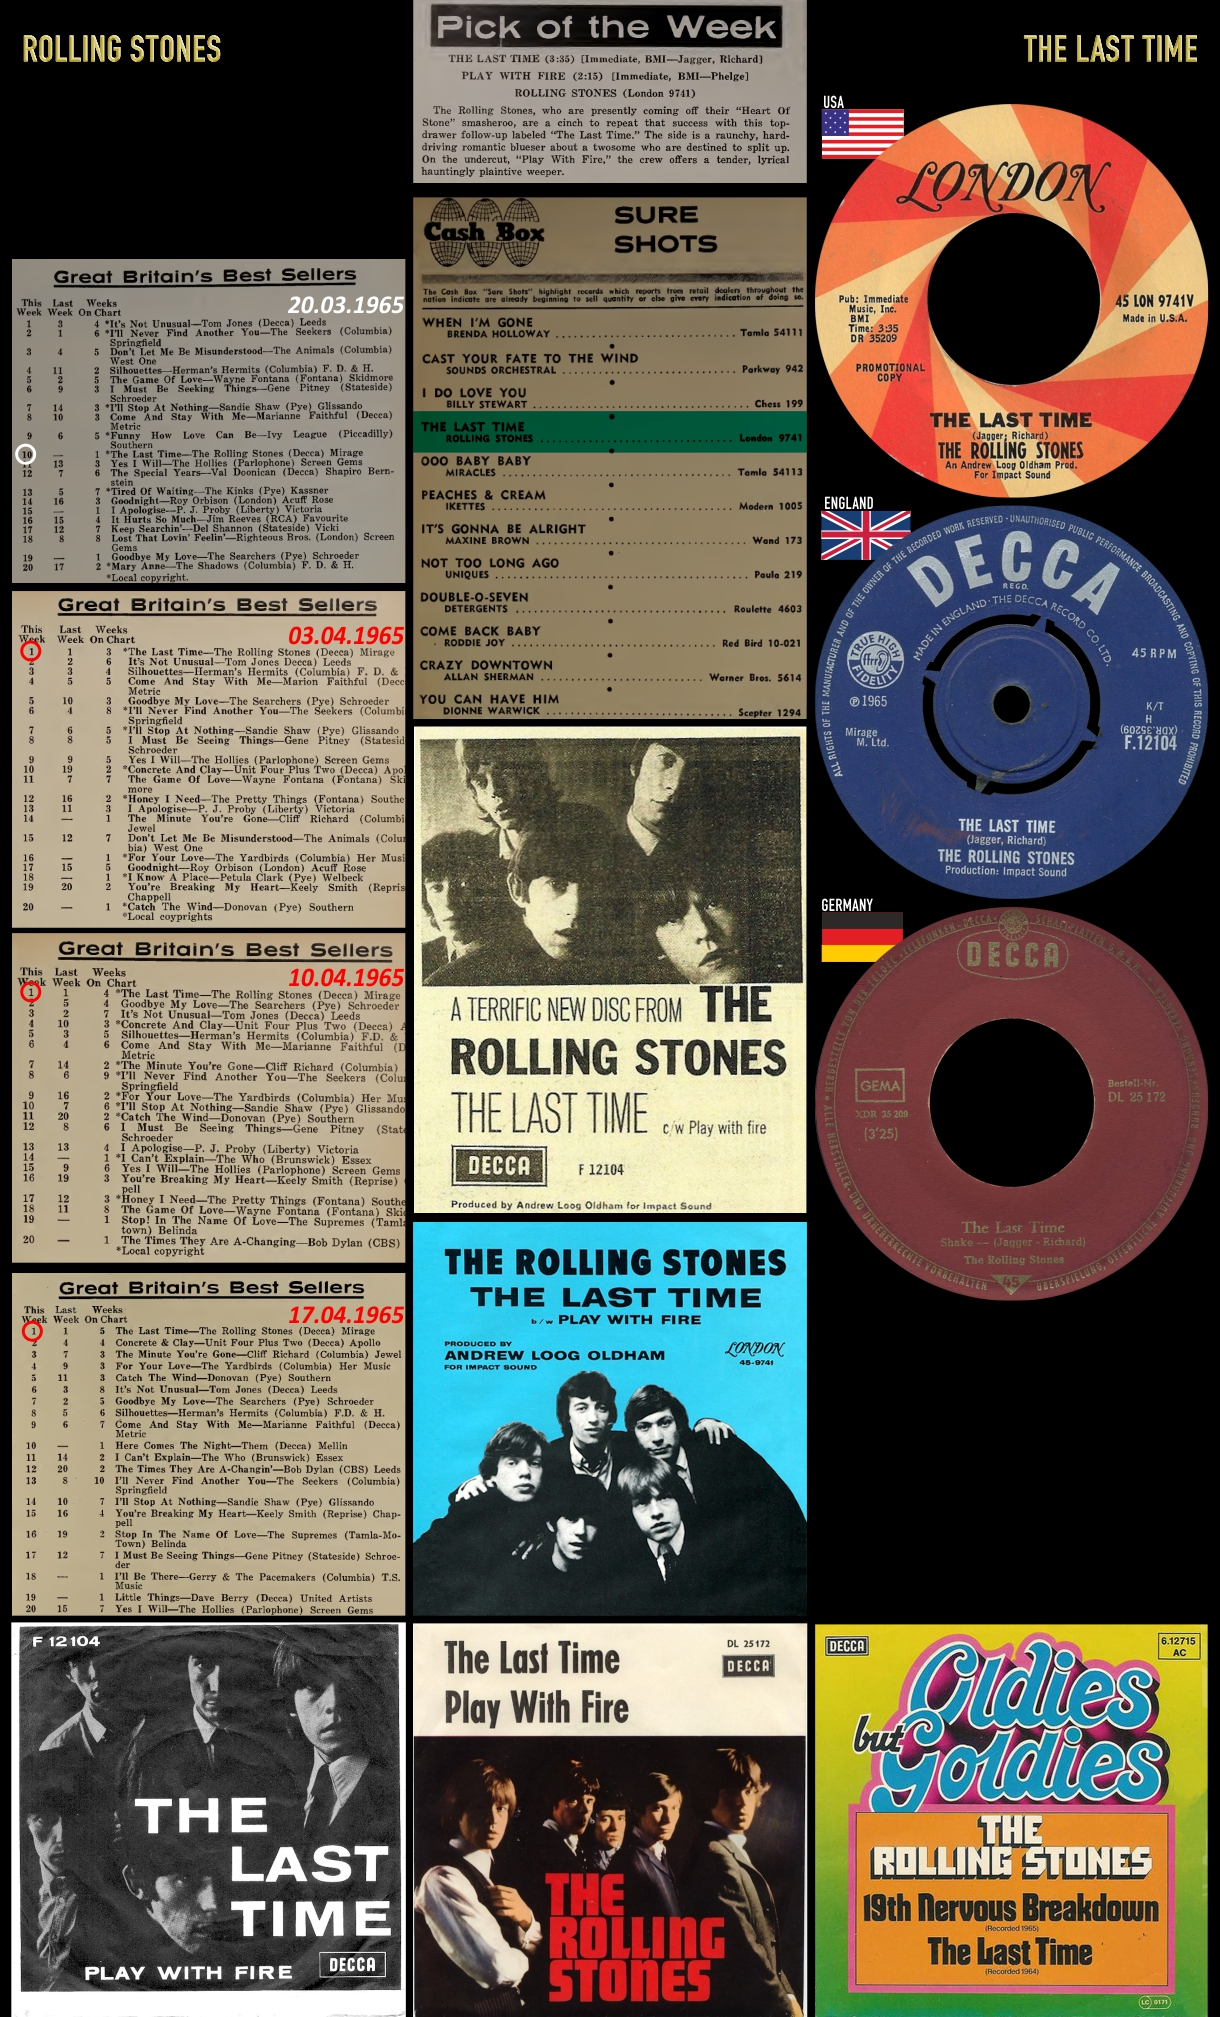 650306_Rolling Stones_The Last Time